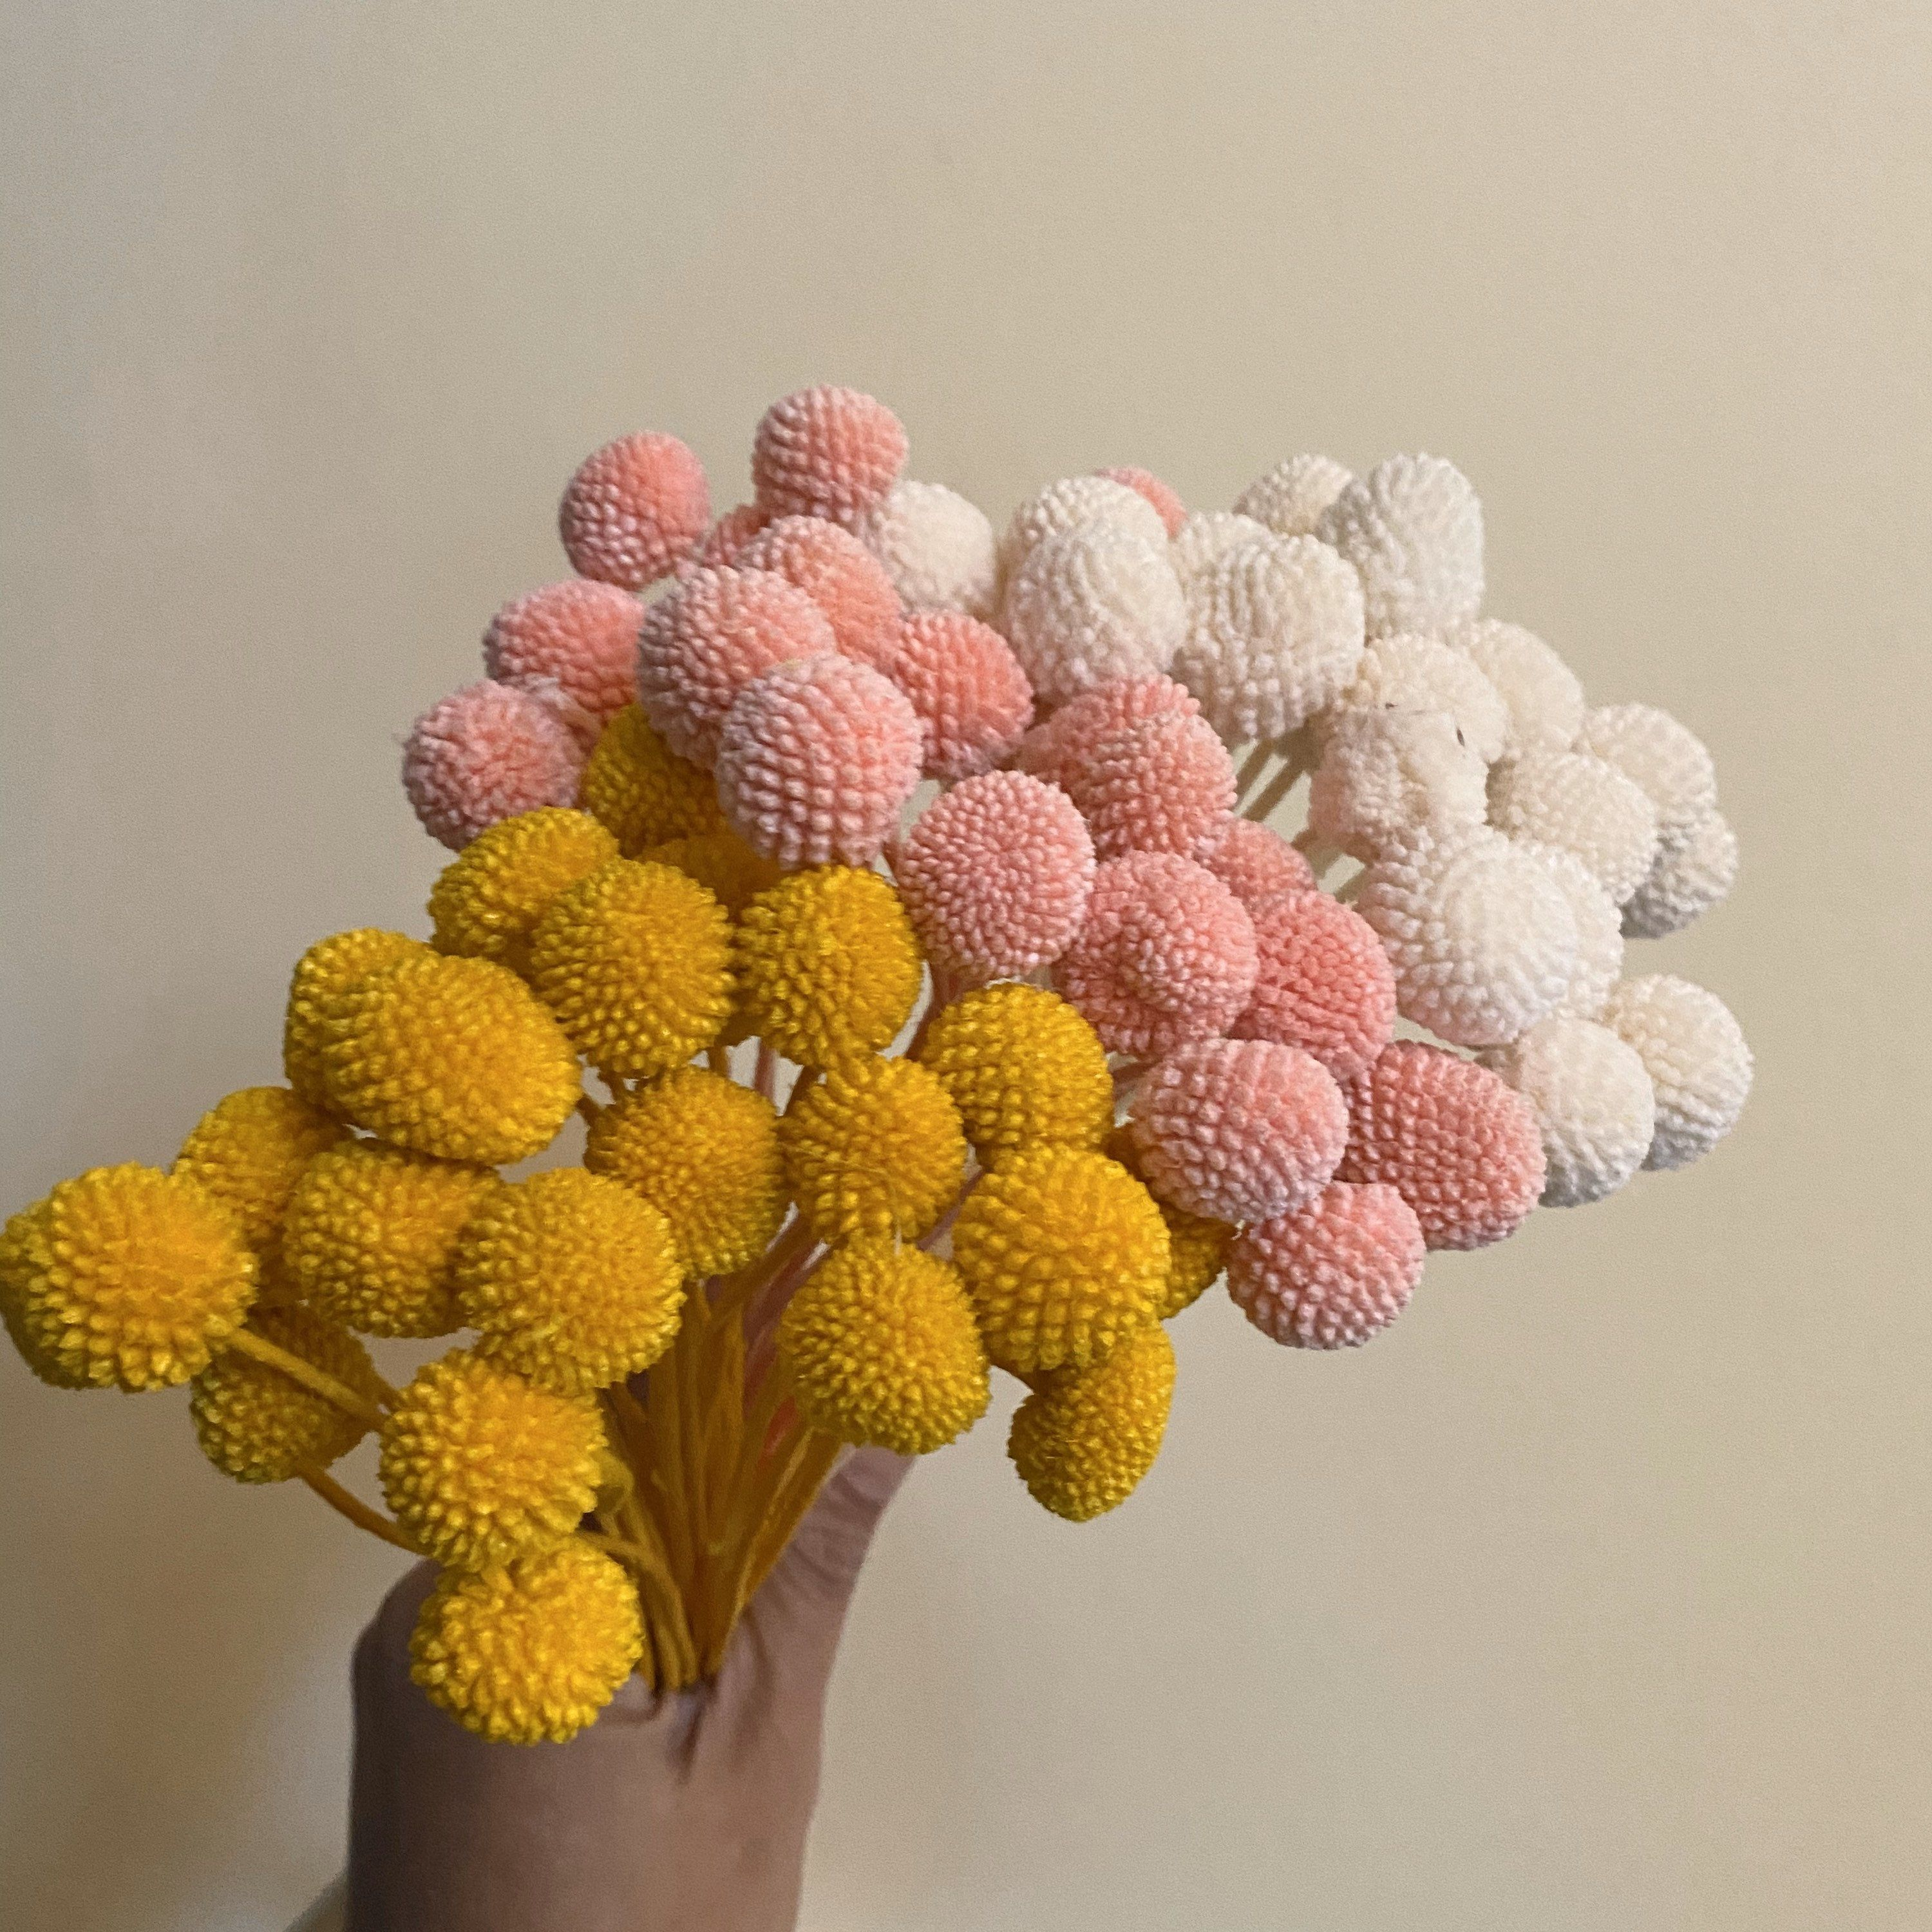 Billy balls 20 stems yellow white pink dried billy etsy